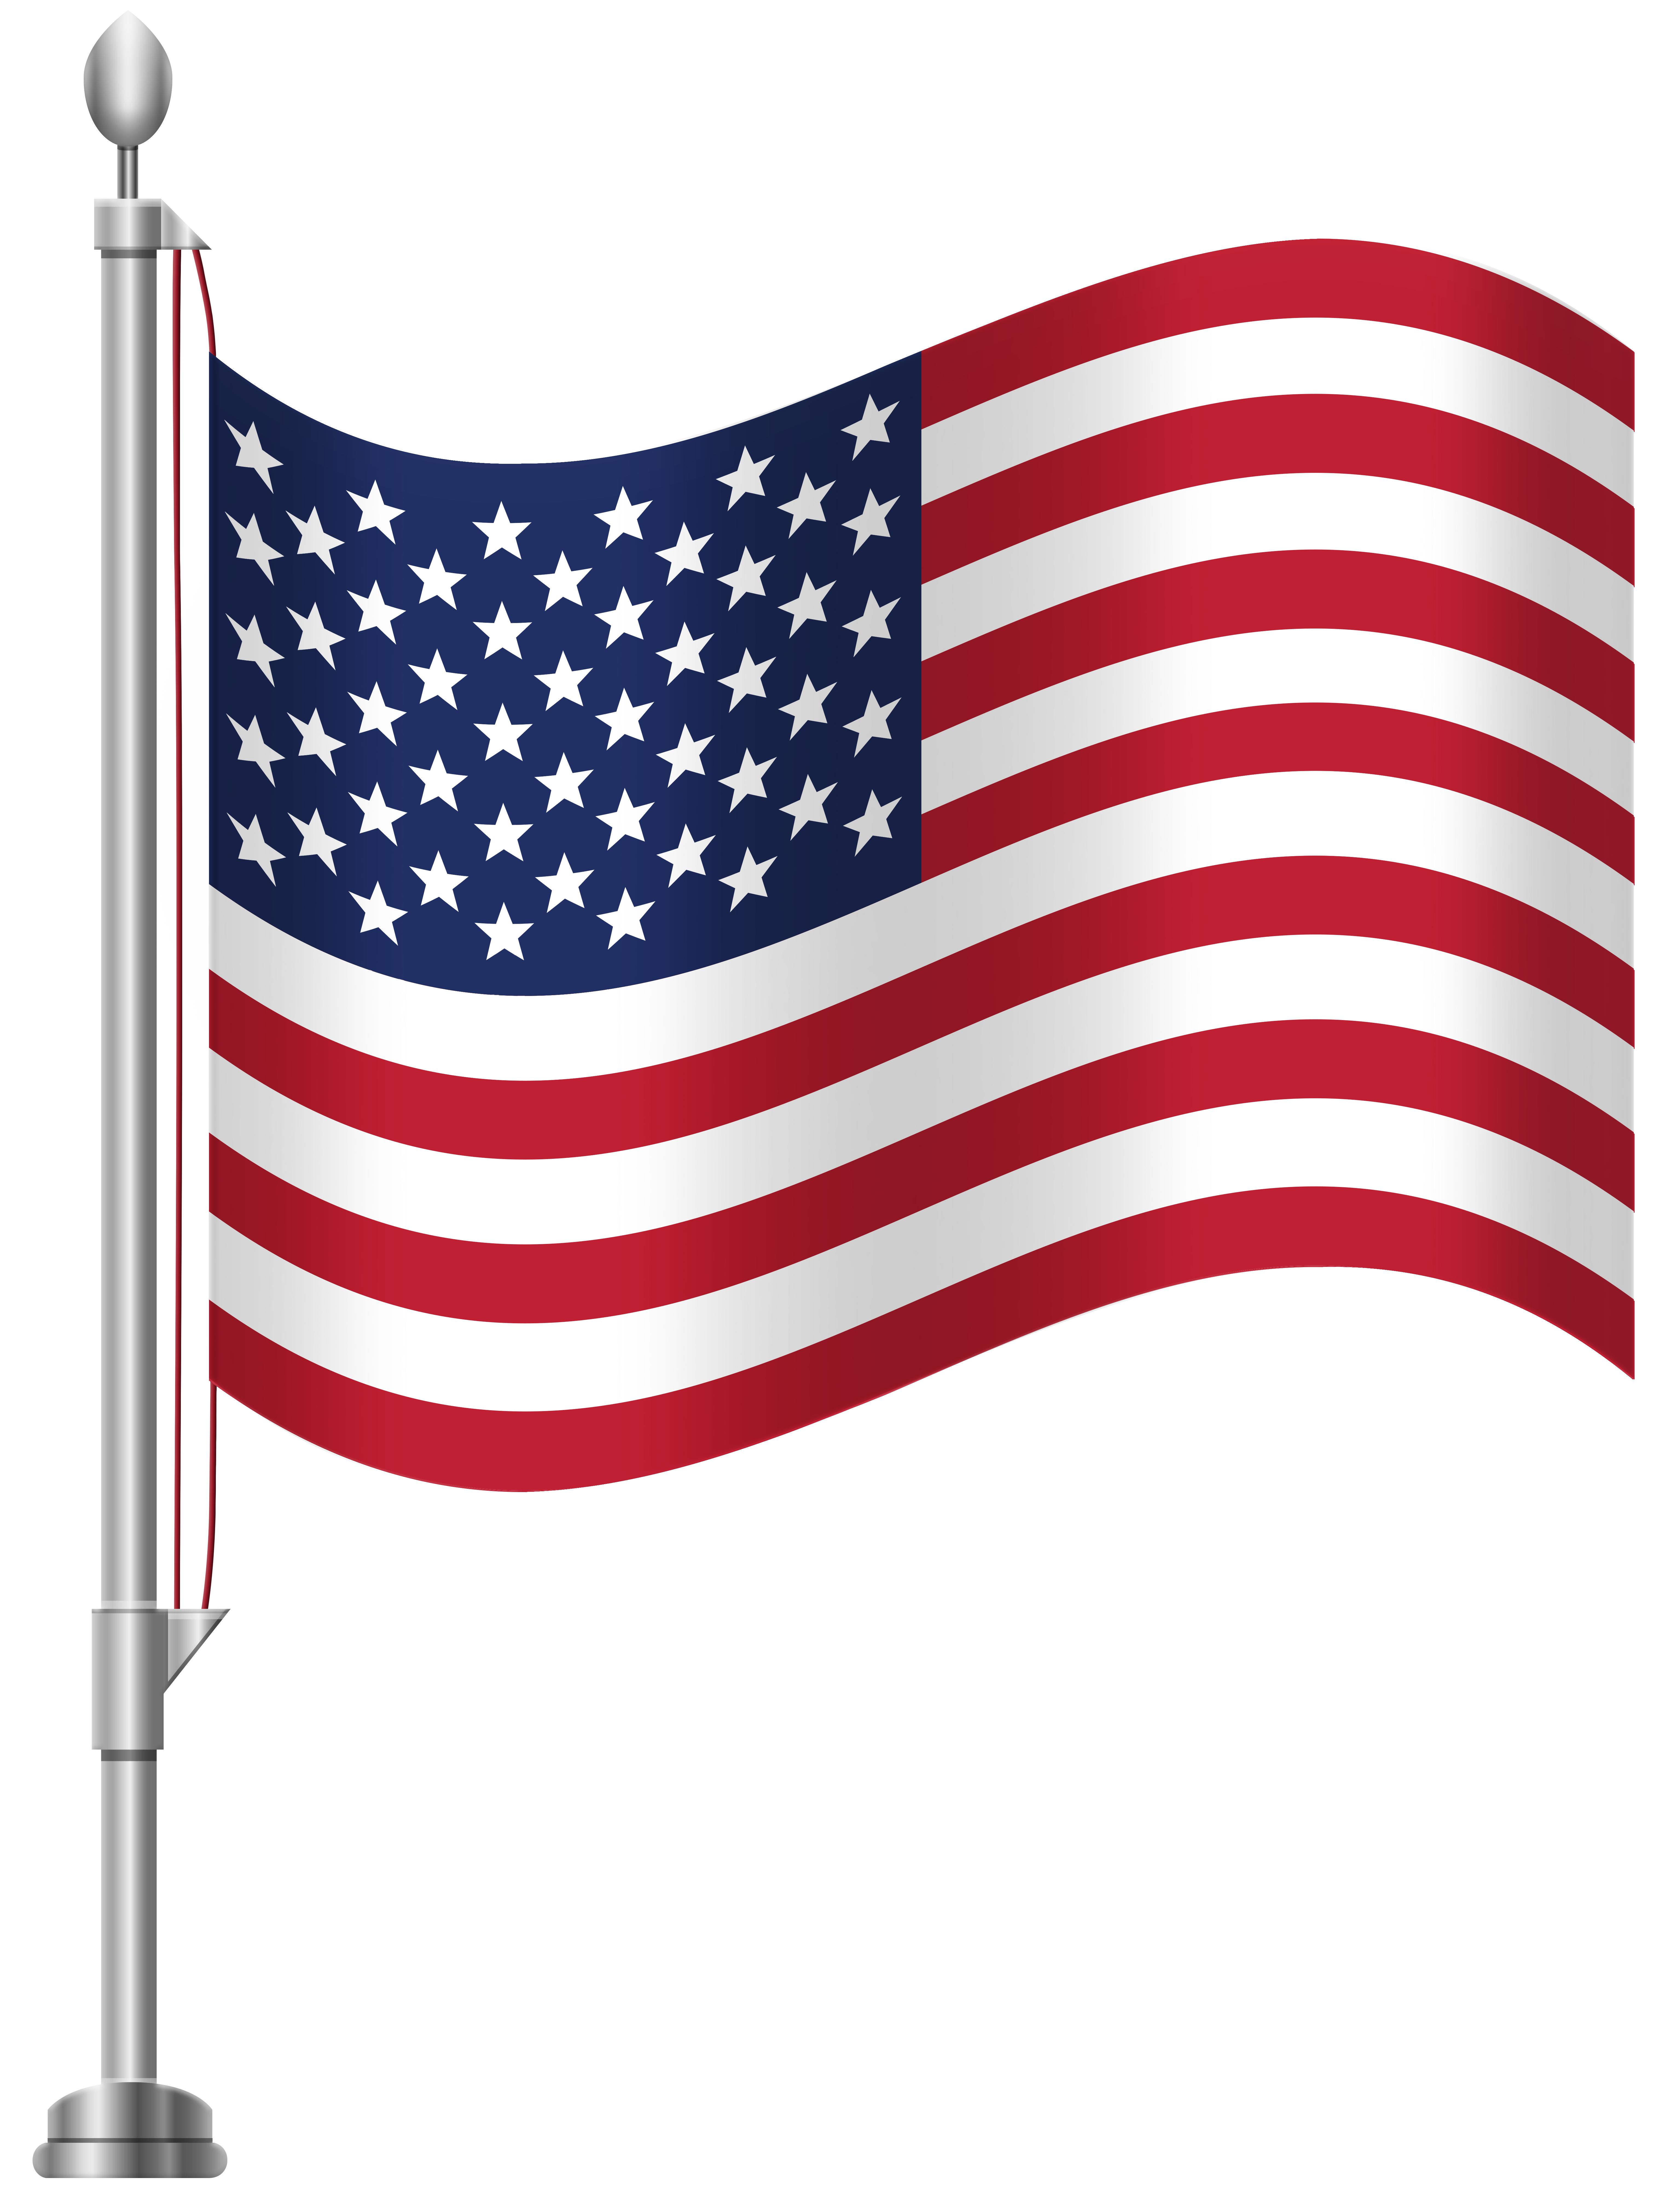 Clipart bow flag american. United states of america